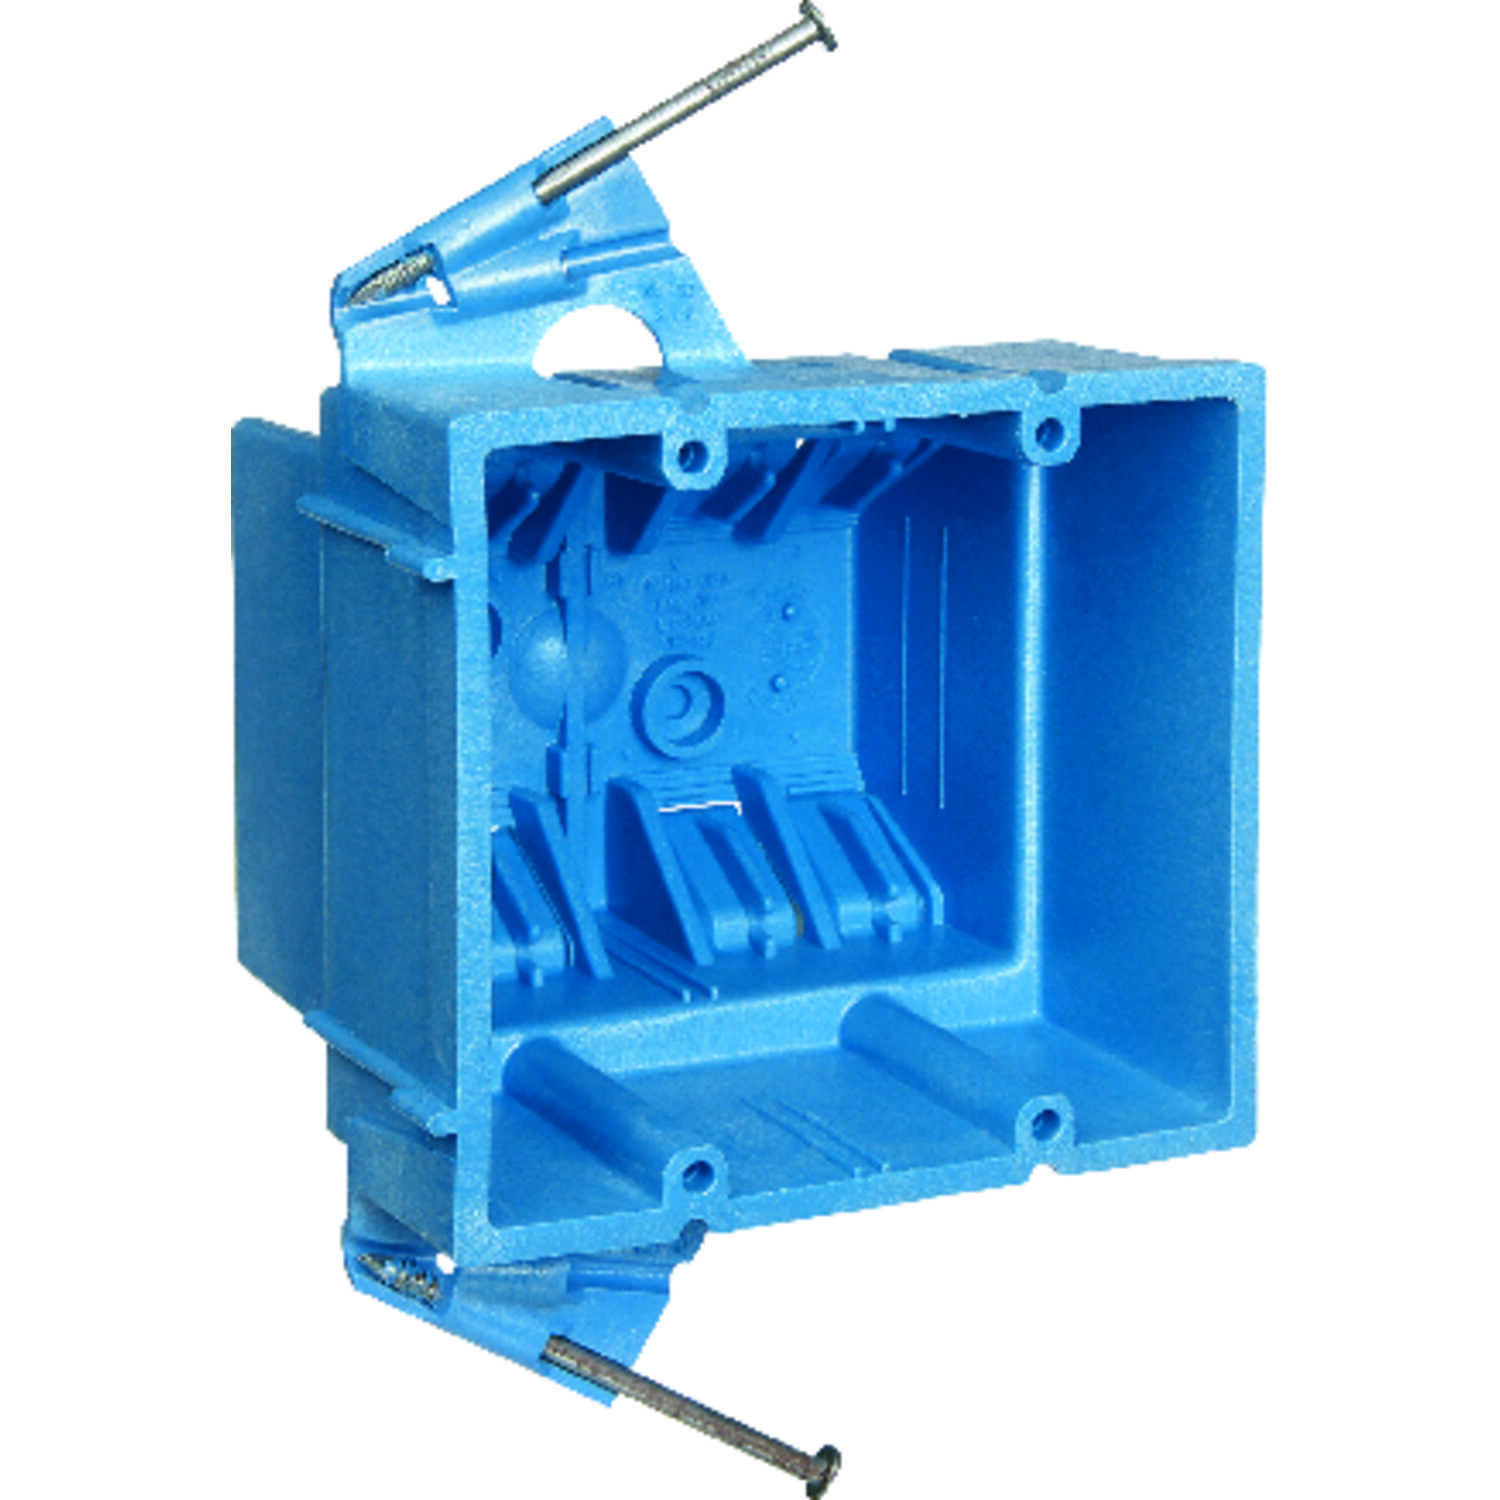 Carlon  Super Blue  3-7/8 in. Rectangle  Thermoplastic  Blue  Outlet Box  2 gang